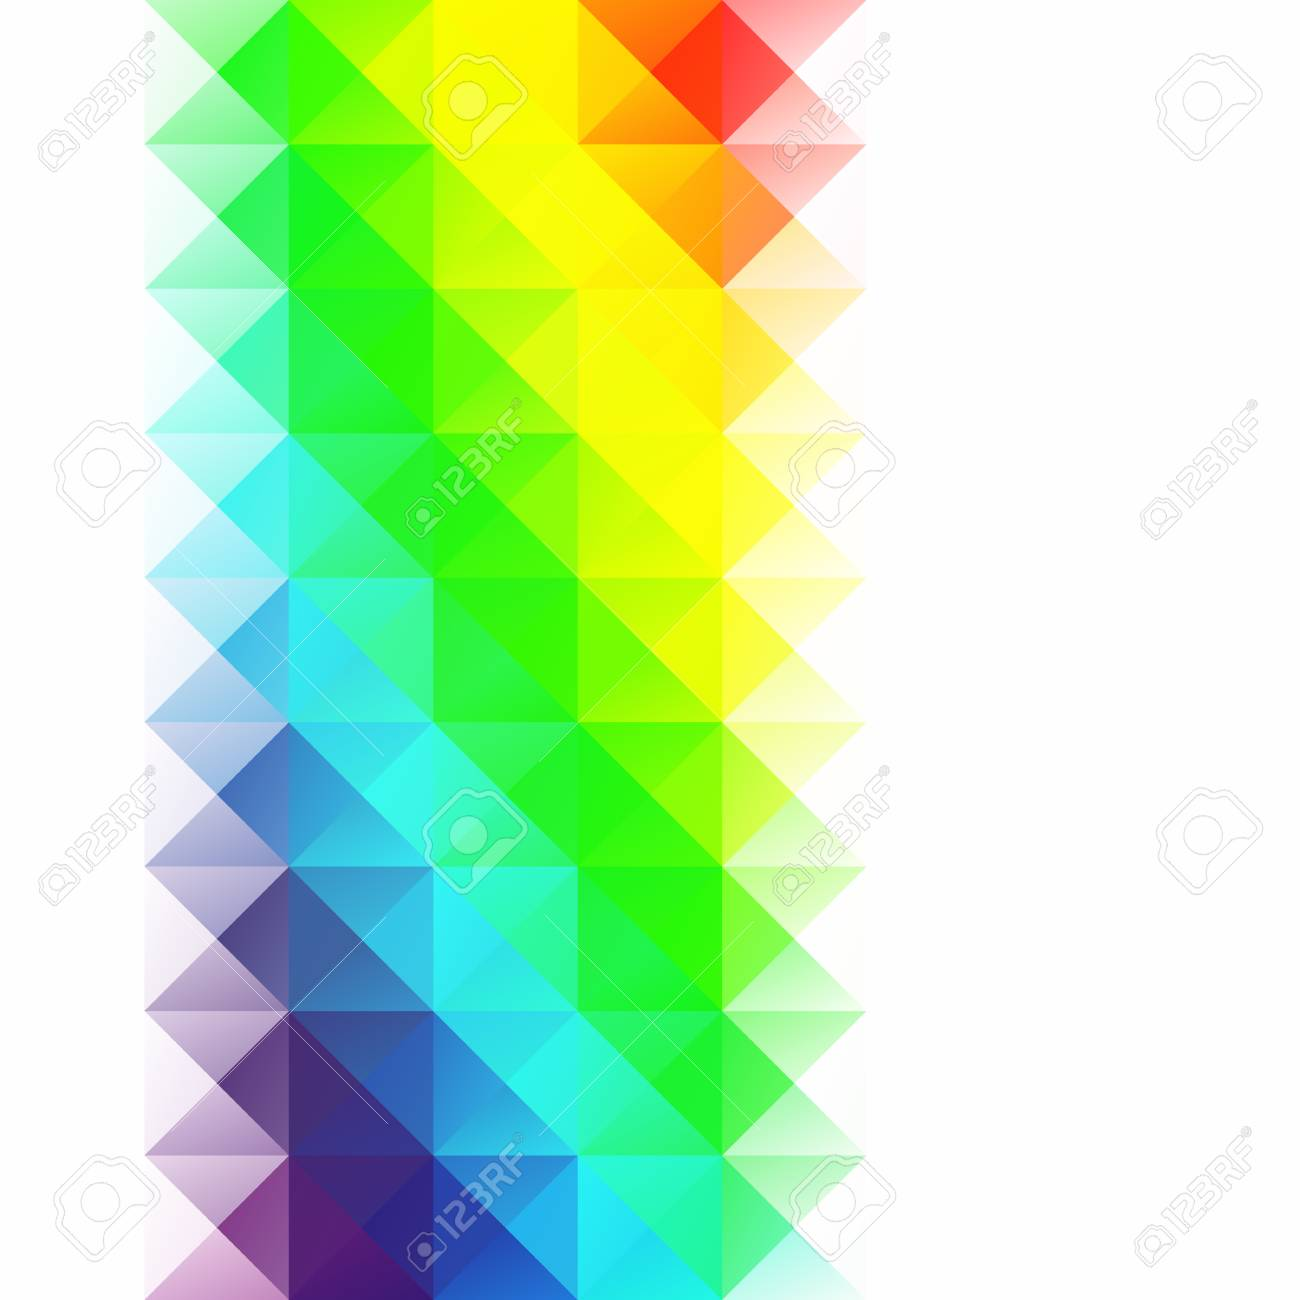 colorful grid mosaic background creative design templates royalty